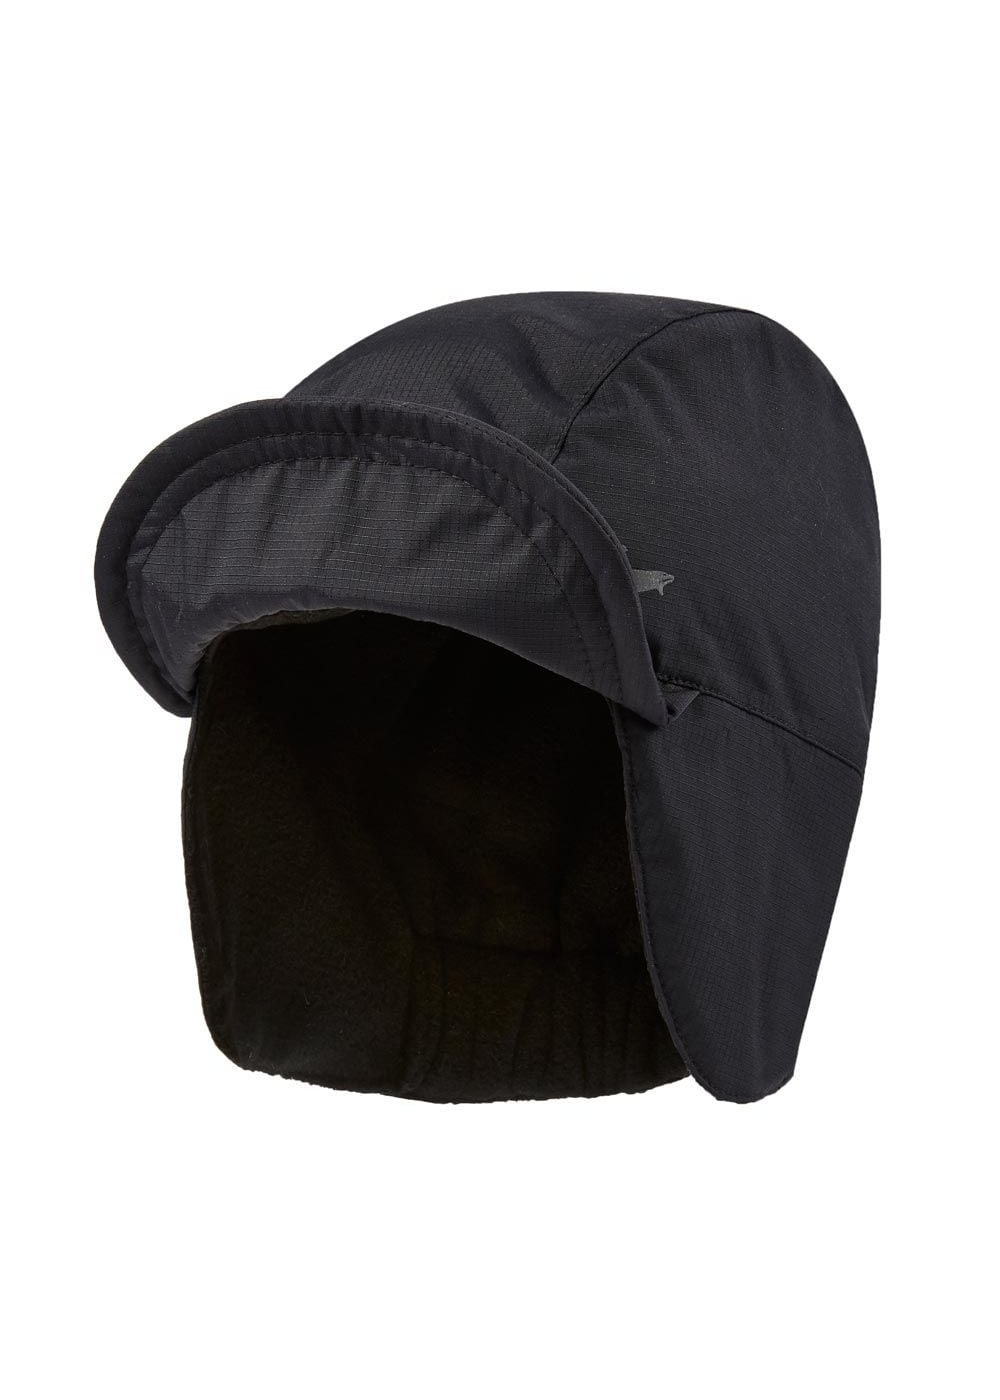 SealSkinz Winter Hat - Mens from A Hume UK c92f25eb0afe